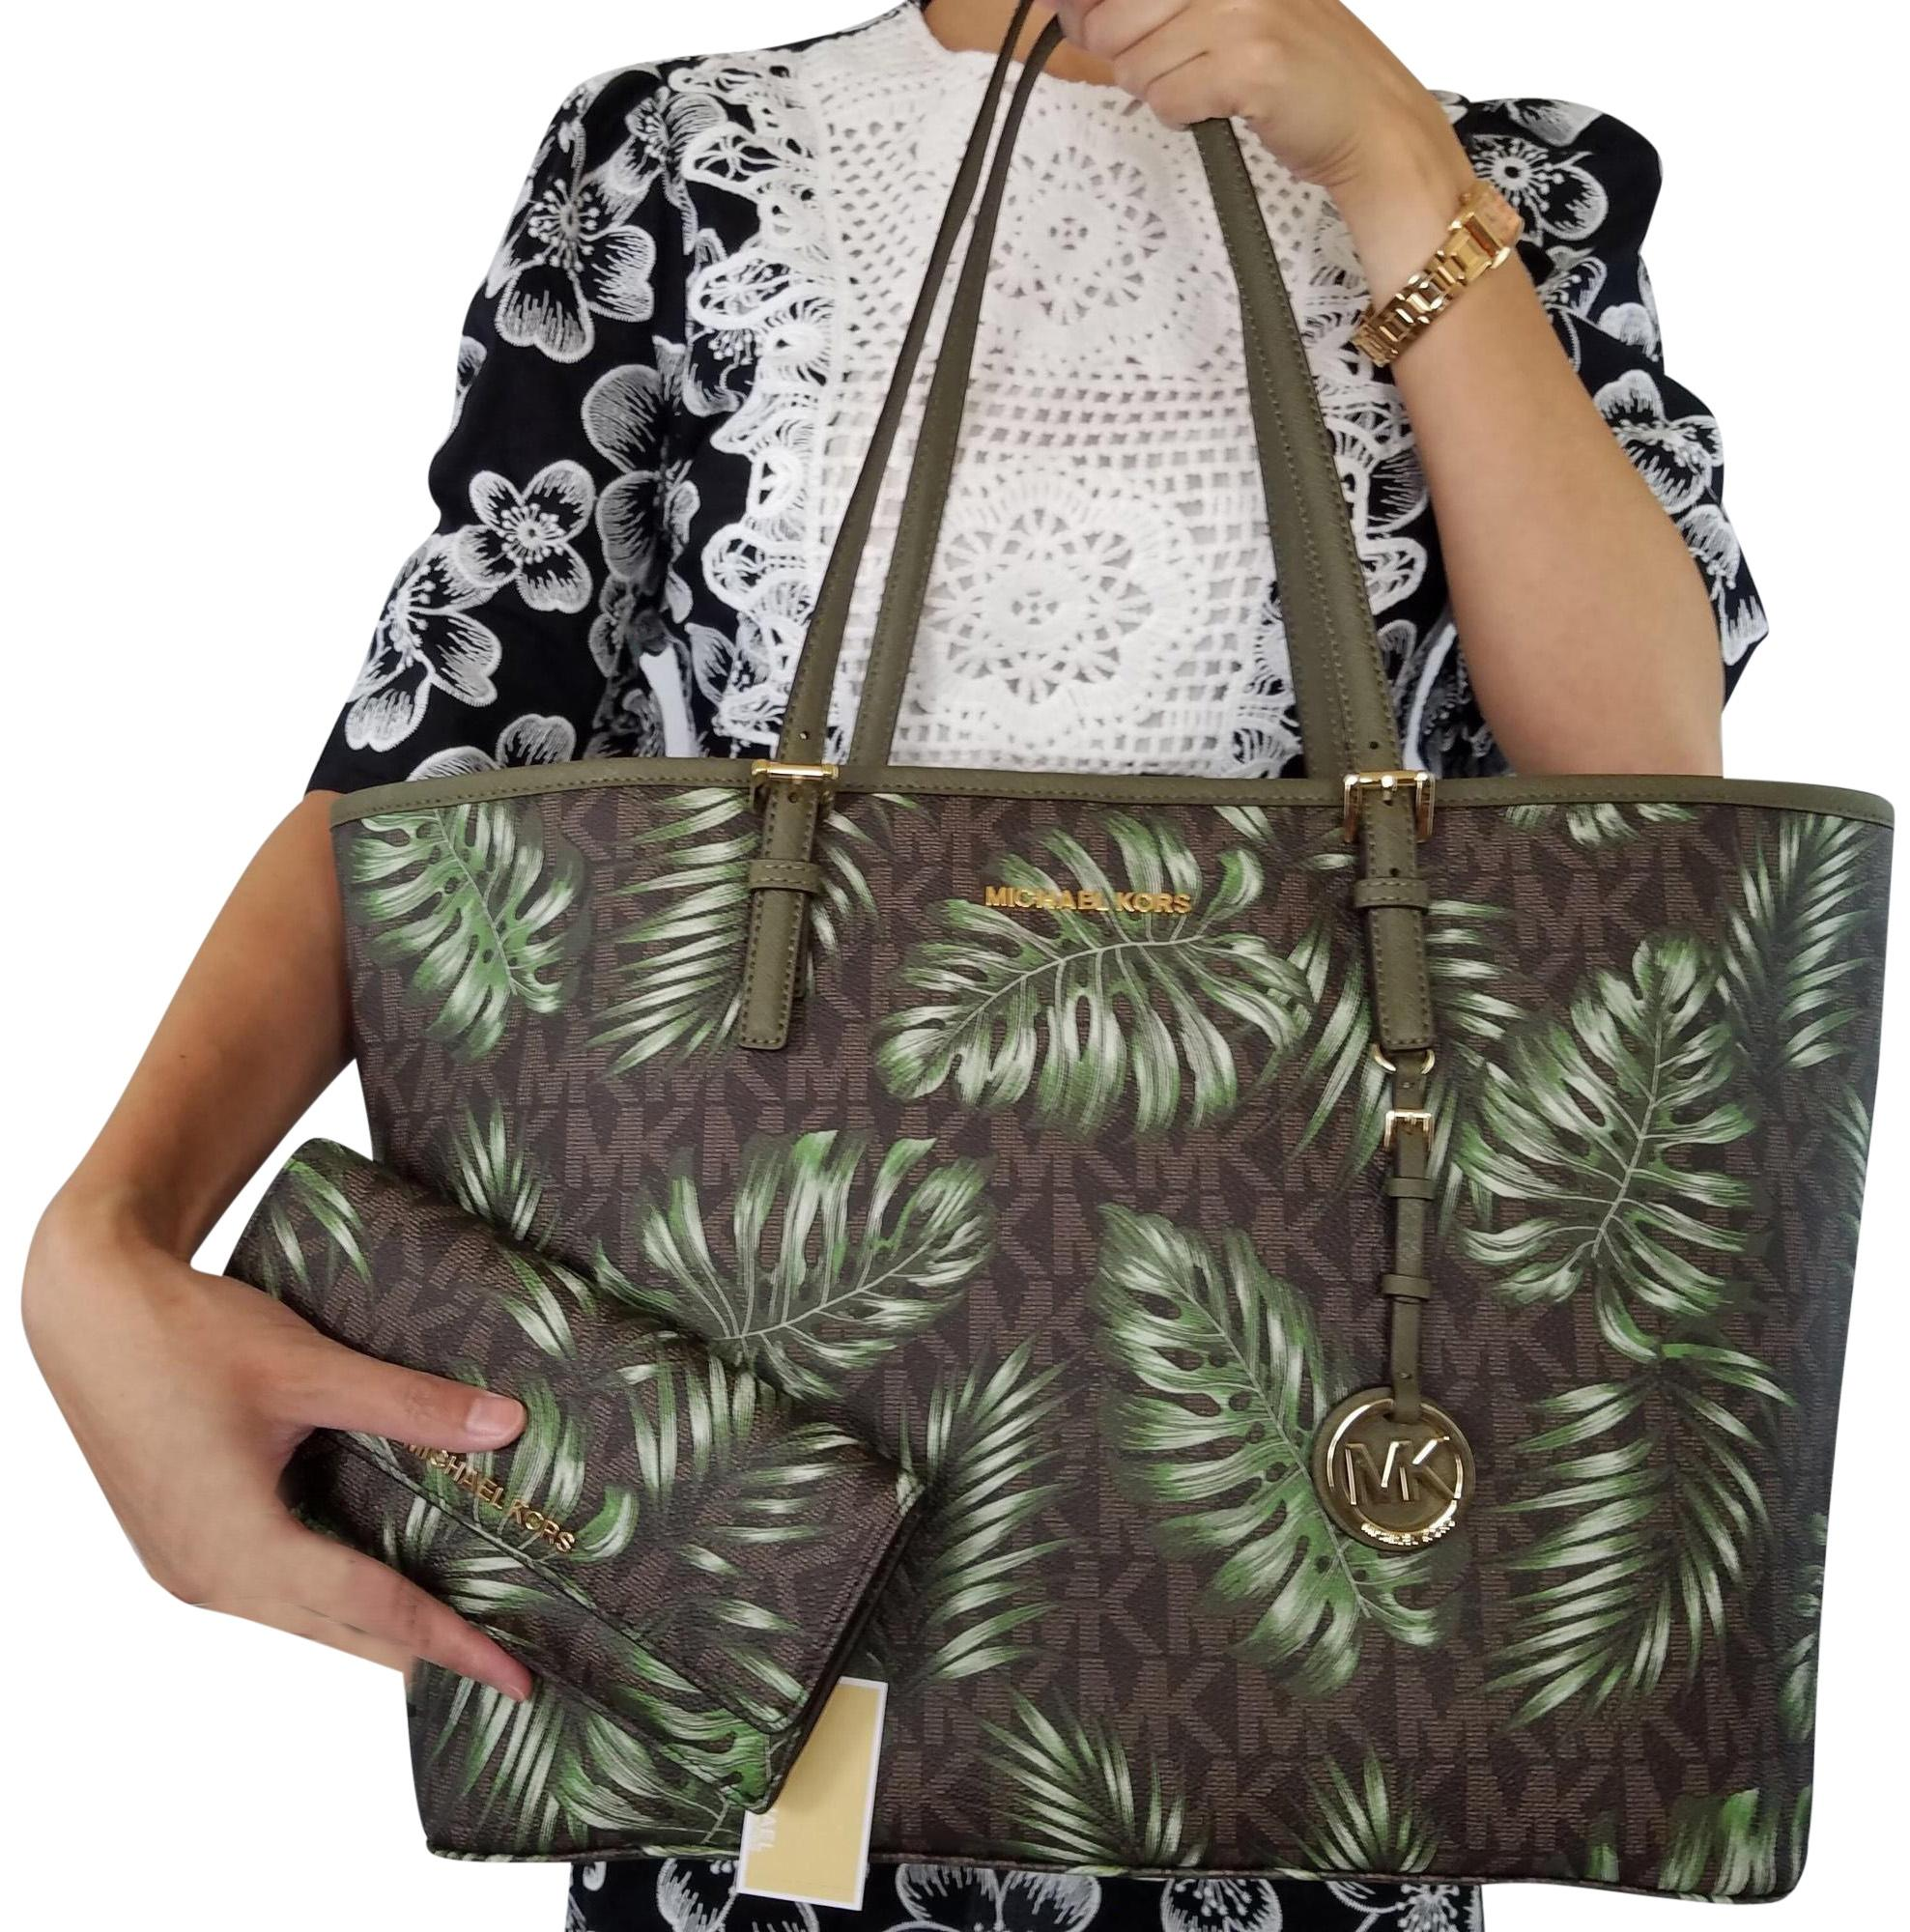 4ac1392bf045c2 ... jet set travel large trifold wallet blossom pink floral f1b72 41b91  sweden michael kors tote in brown olive 0deeb 1c84b ...